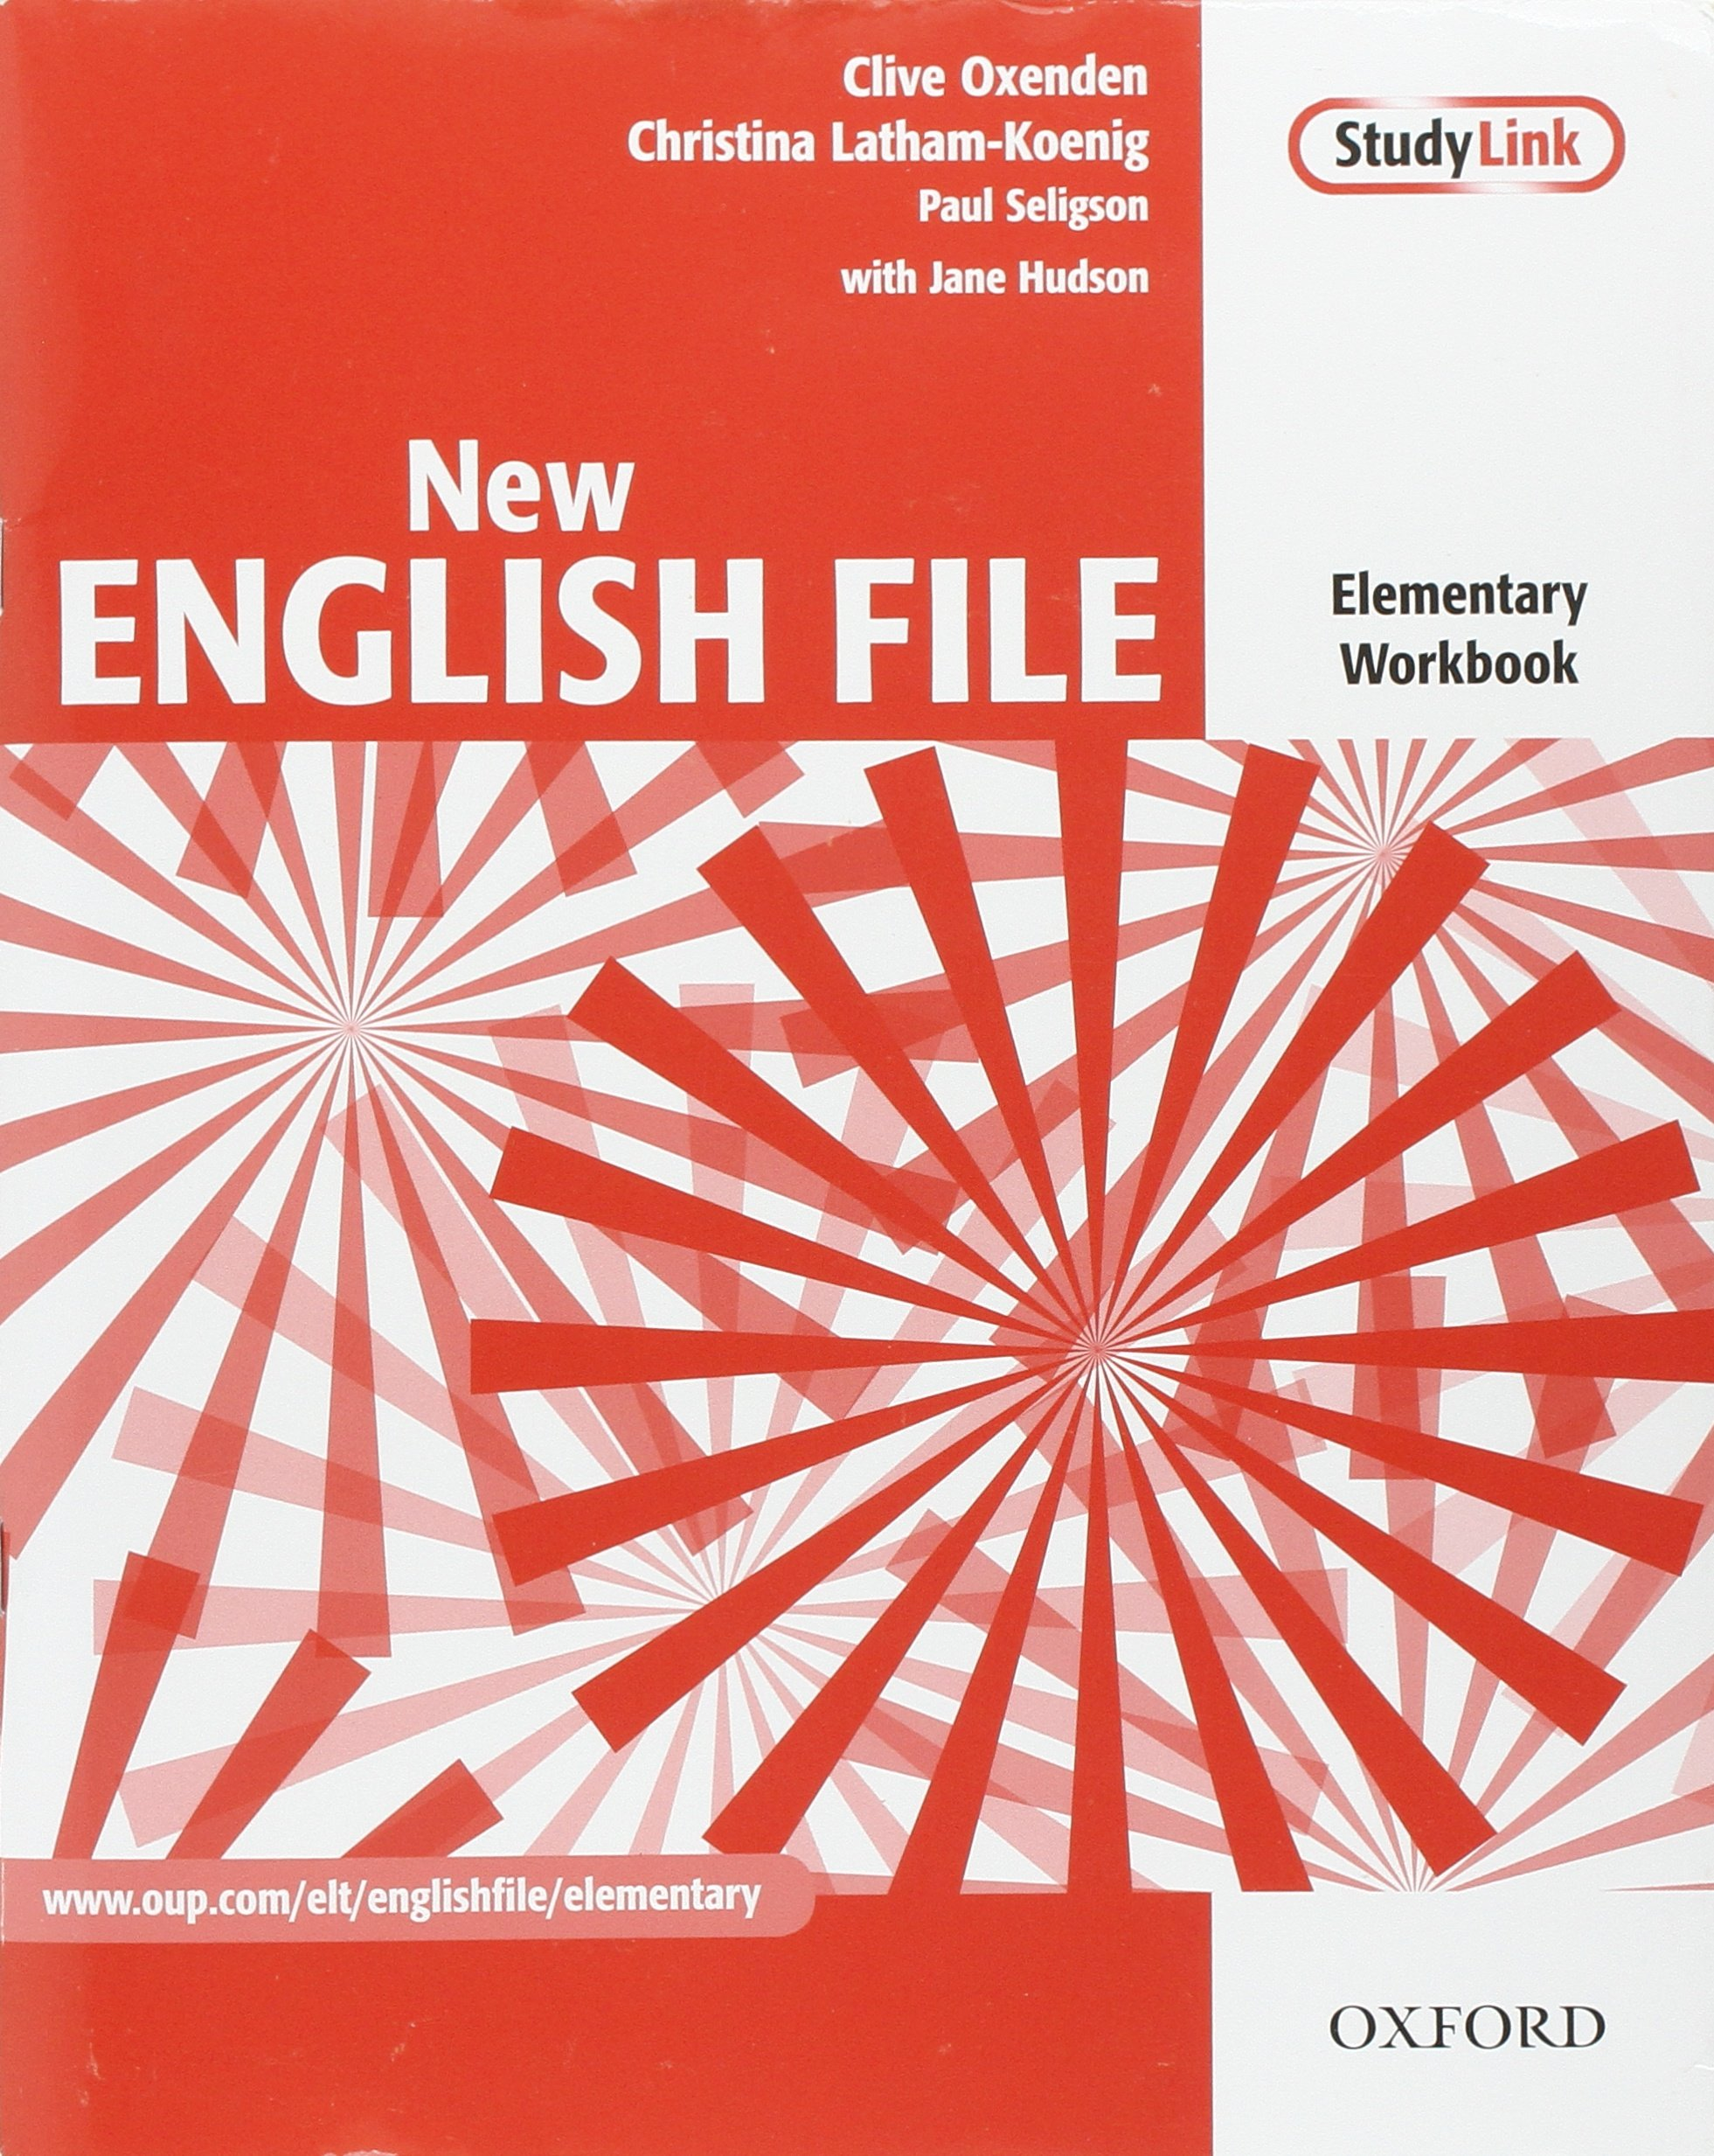 New english file elementary workbook six level general english new english file elementary workbook six level general english course for adults workbook elementary level amazon clive oxenden fandeluxe Images